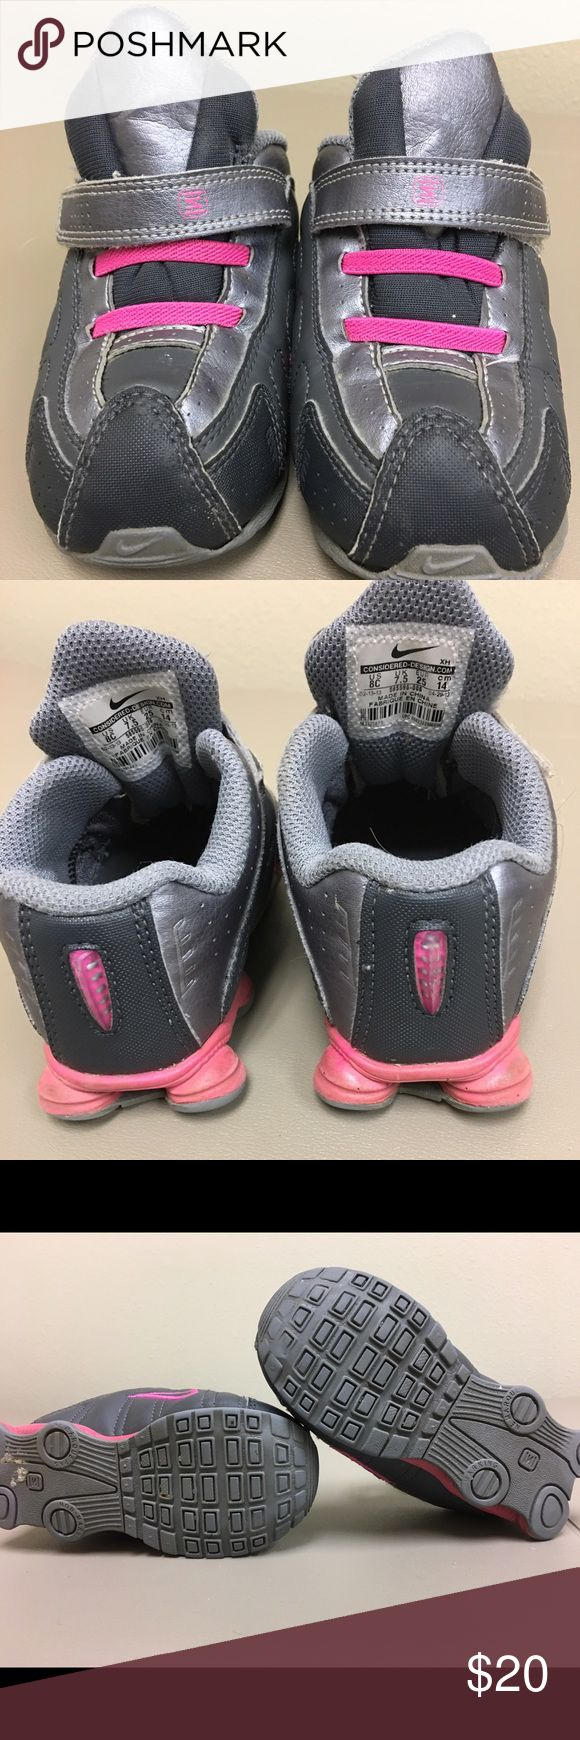 Nike Shocks Gently used Nike Shocks for girls. Still has a lot of wear. Black and pink. Size 8. My daughter loves these. Price is negotiable. Make offer, you may be surprised. 😊 Nike Shoes Sneakers